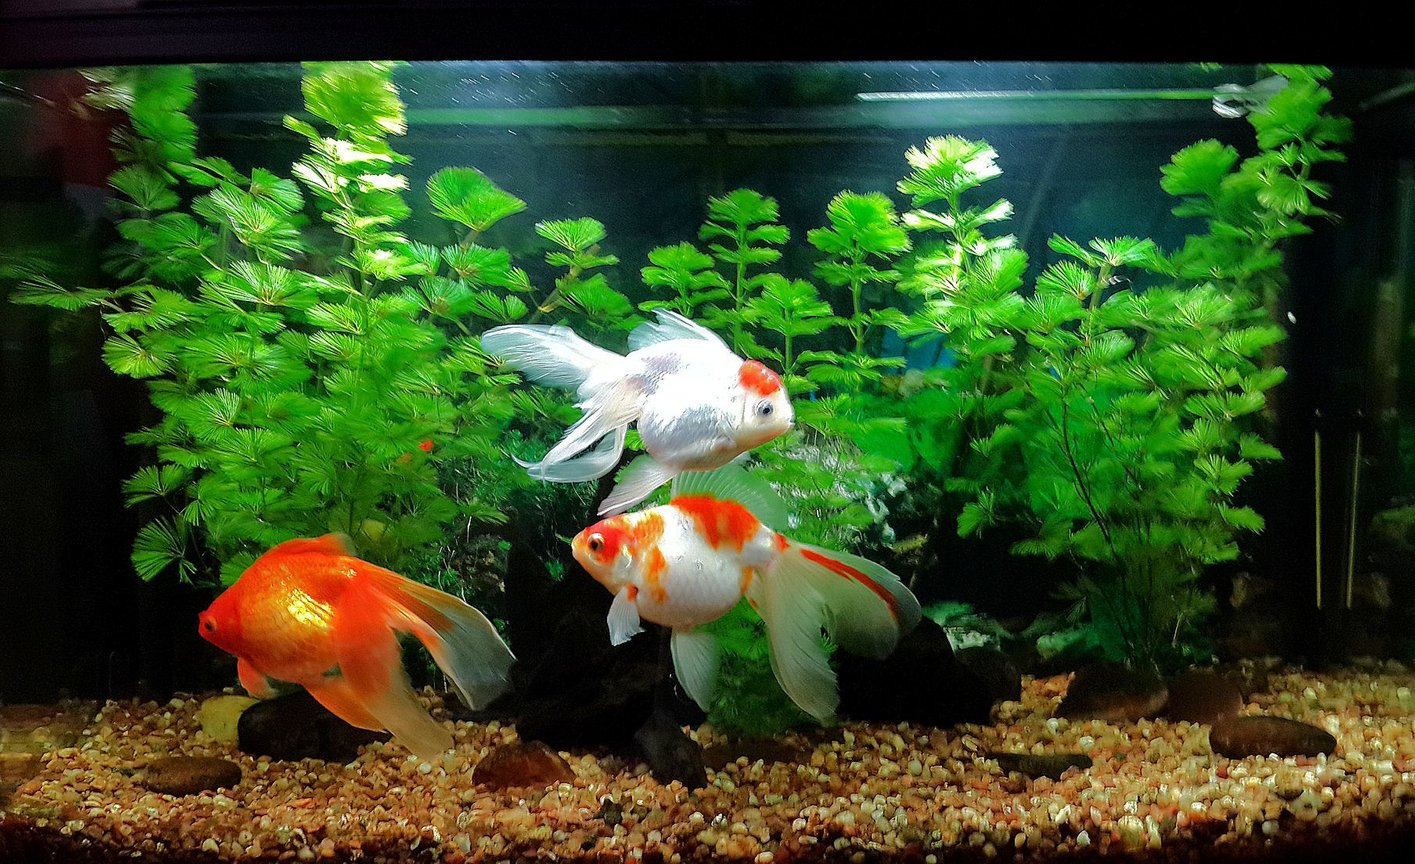 32 gallons freshwater fish tank (mostly fish and non-living decorations) - My 32 gallons tank. 3 goldfish and 1 corydoras.